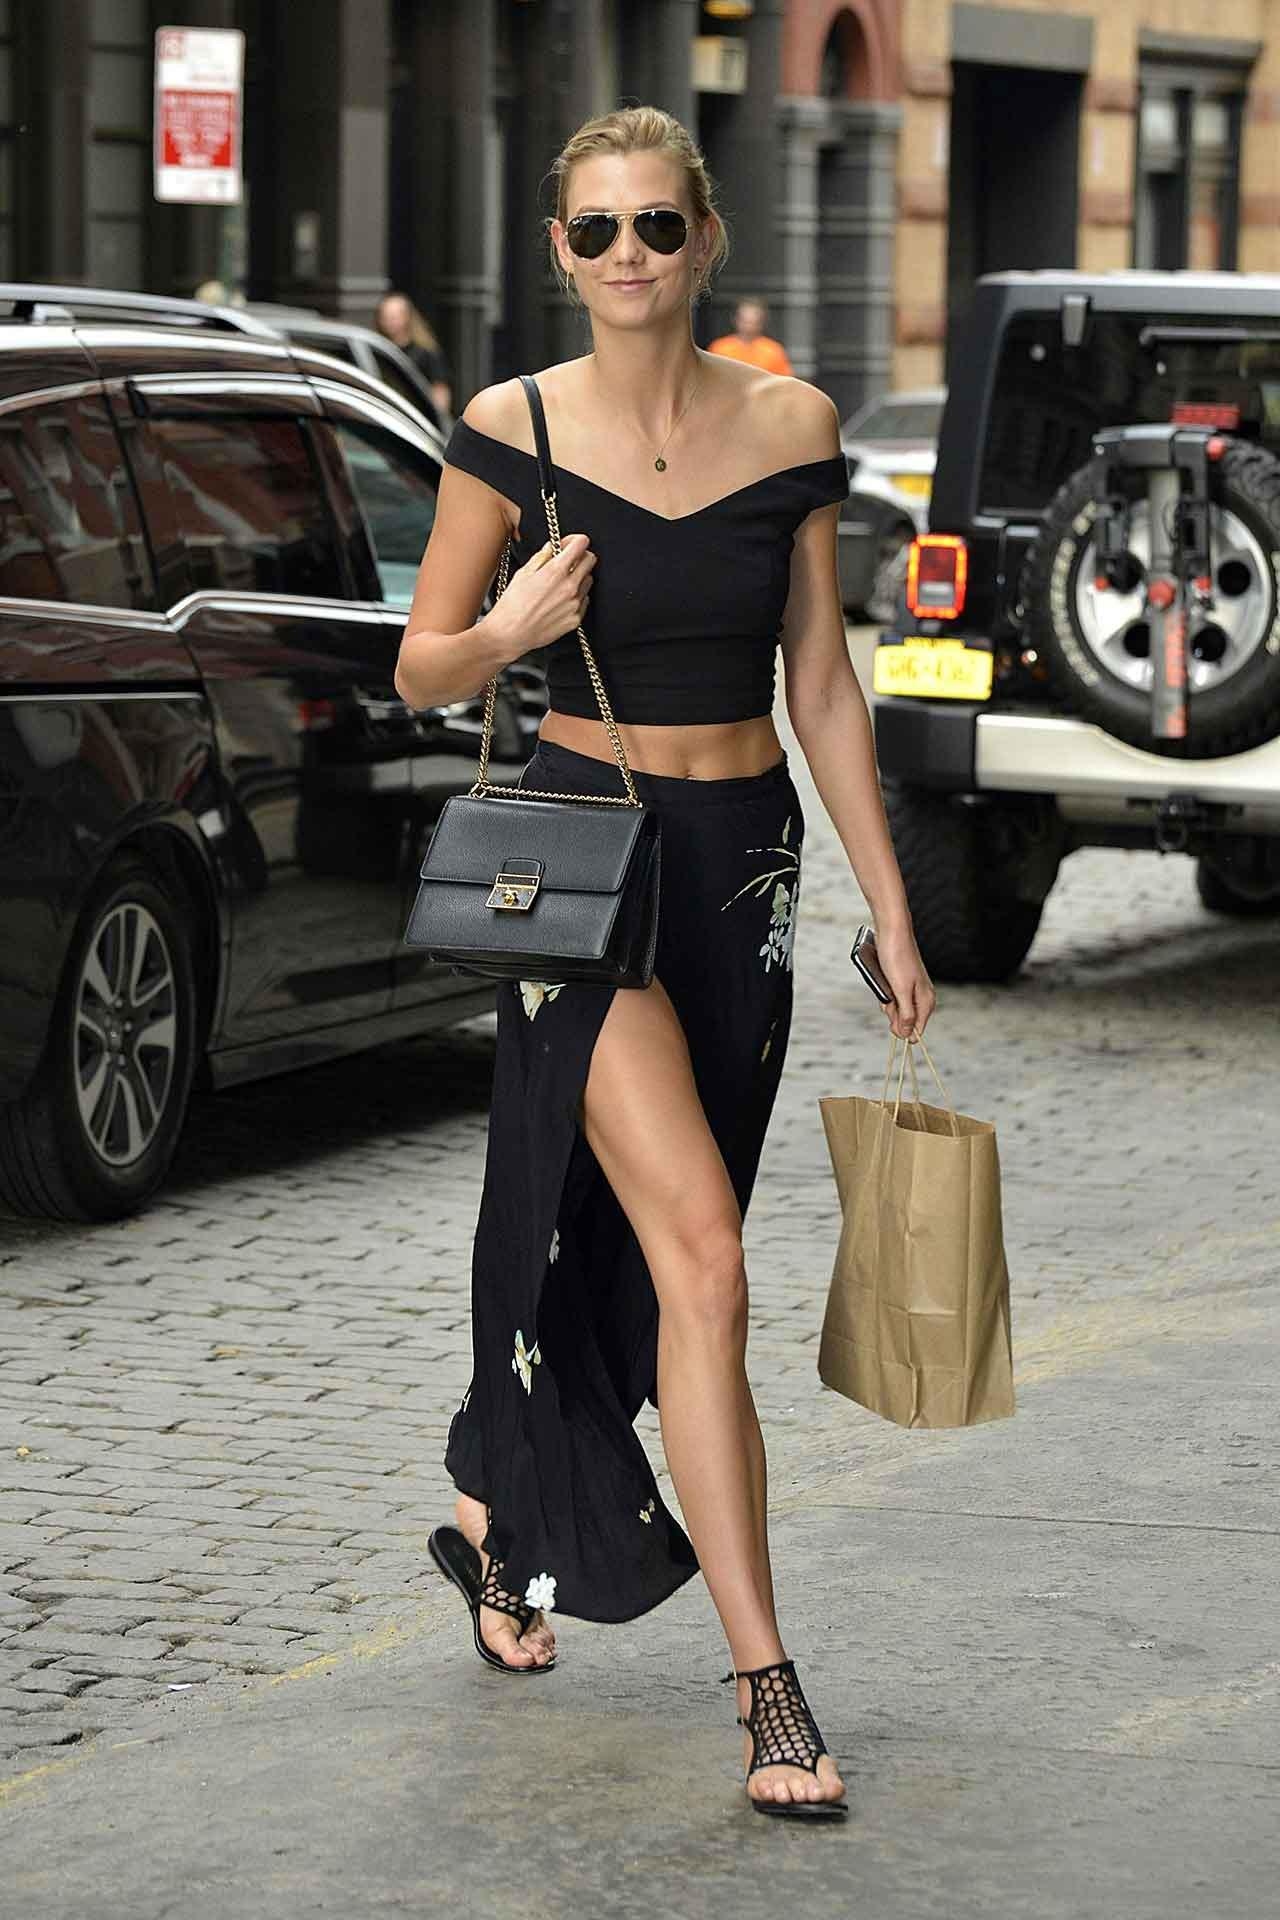 From @GiGiHadid to @karliekloss, take summer style notes from the stars http://t.co/WYewUwHwYd http://t.co/Rwv2r5E4mM